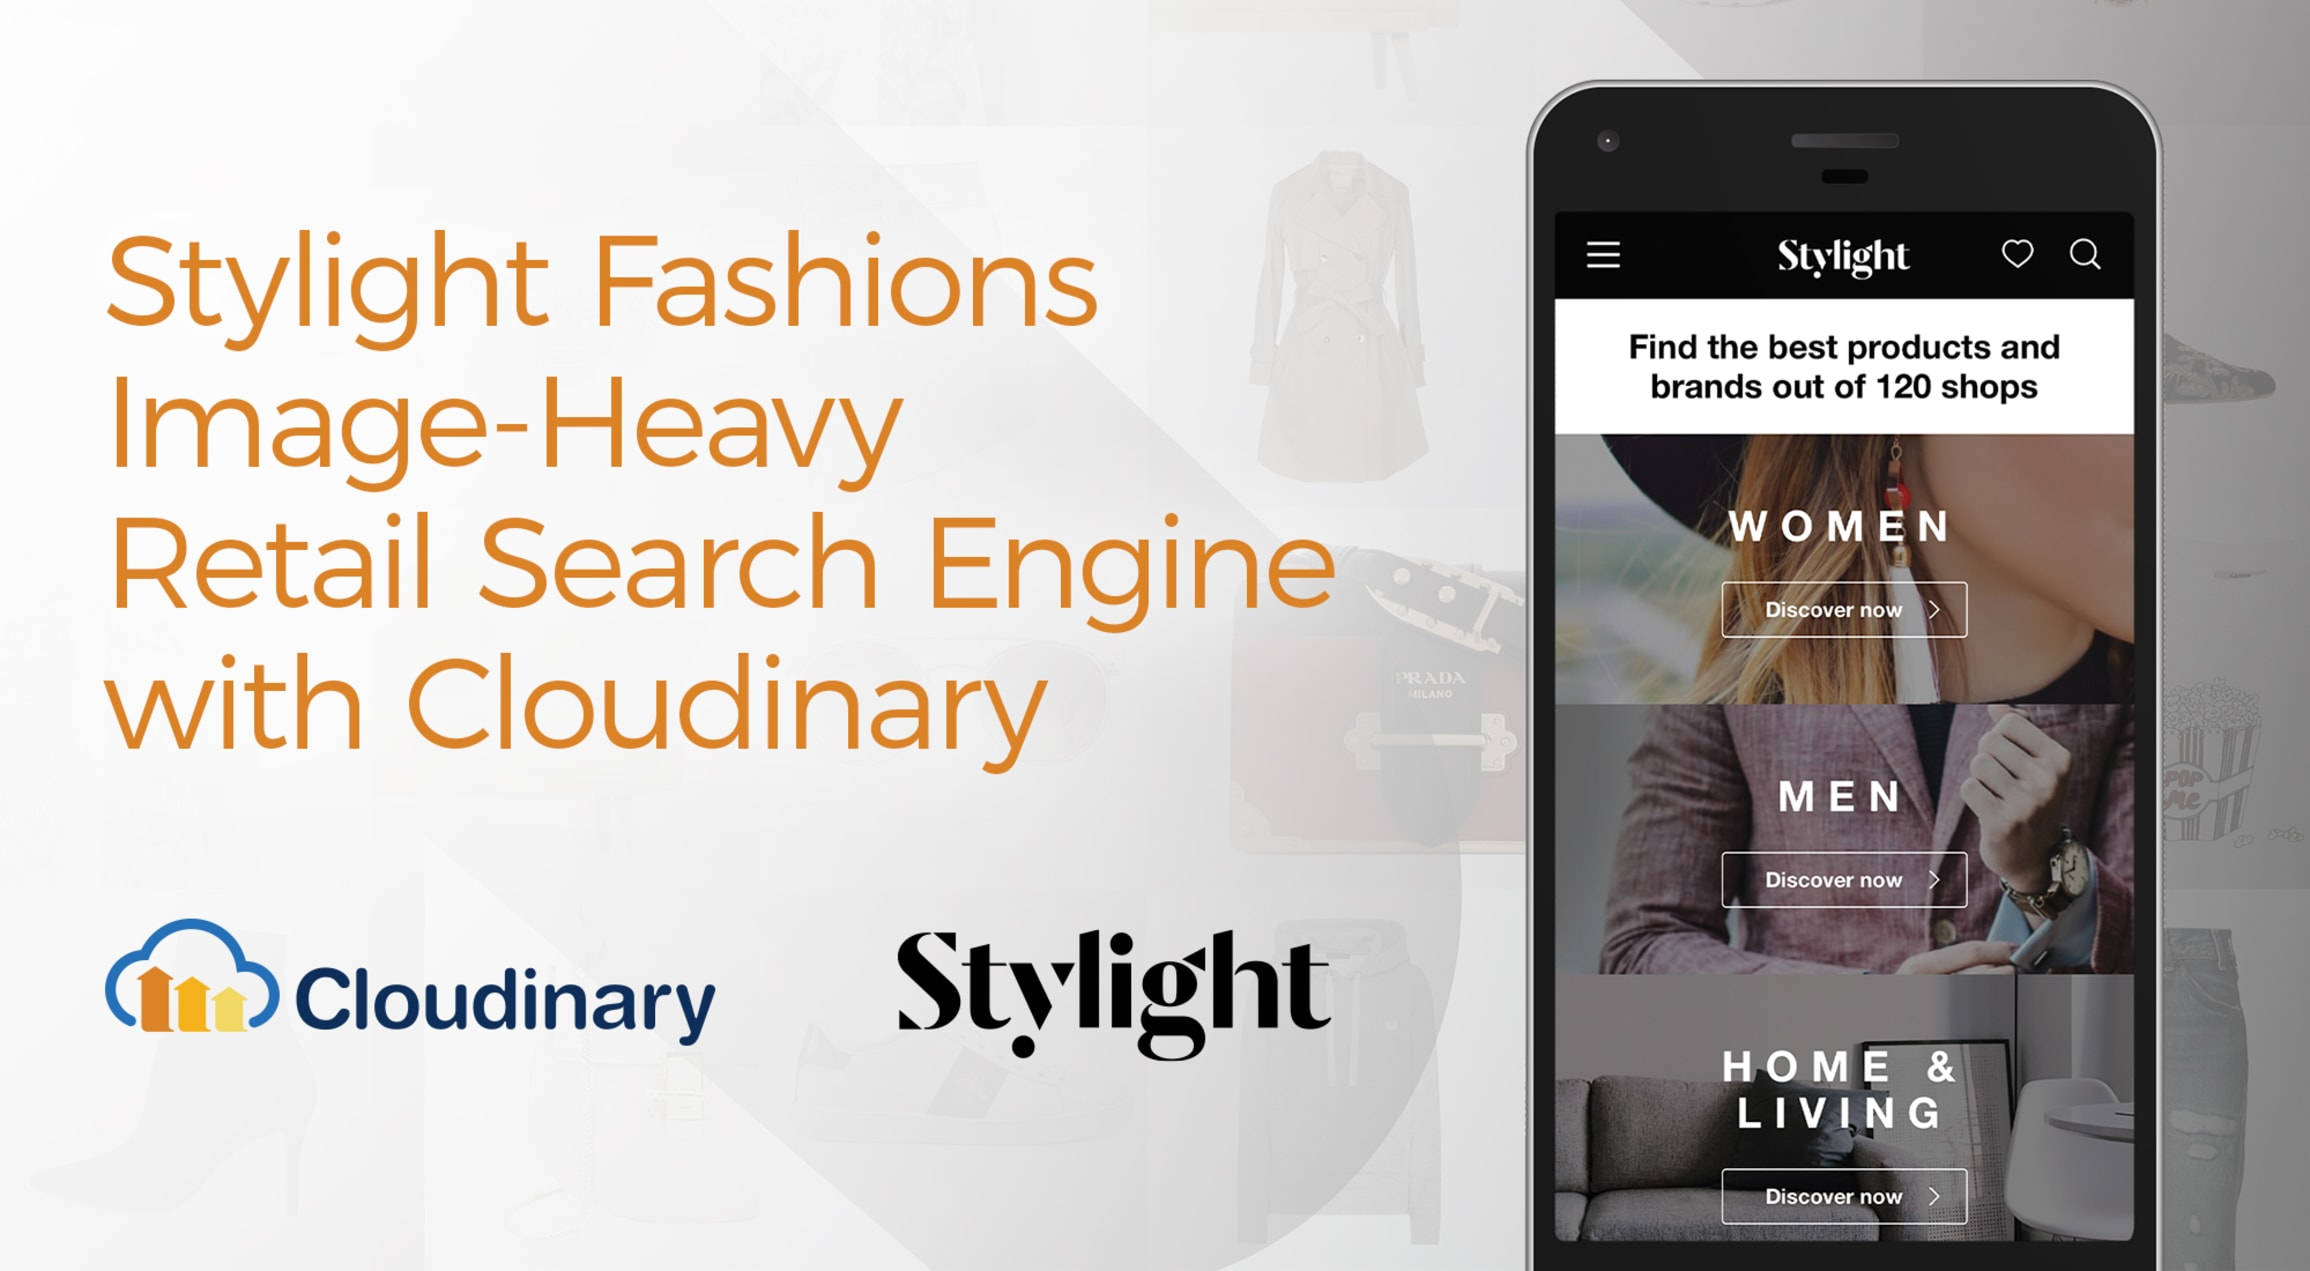 5be3761b25a87c Stylight Fashions Image-Heavy Retail Search Engine with Cloudinary